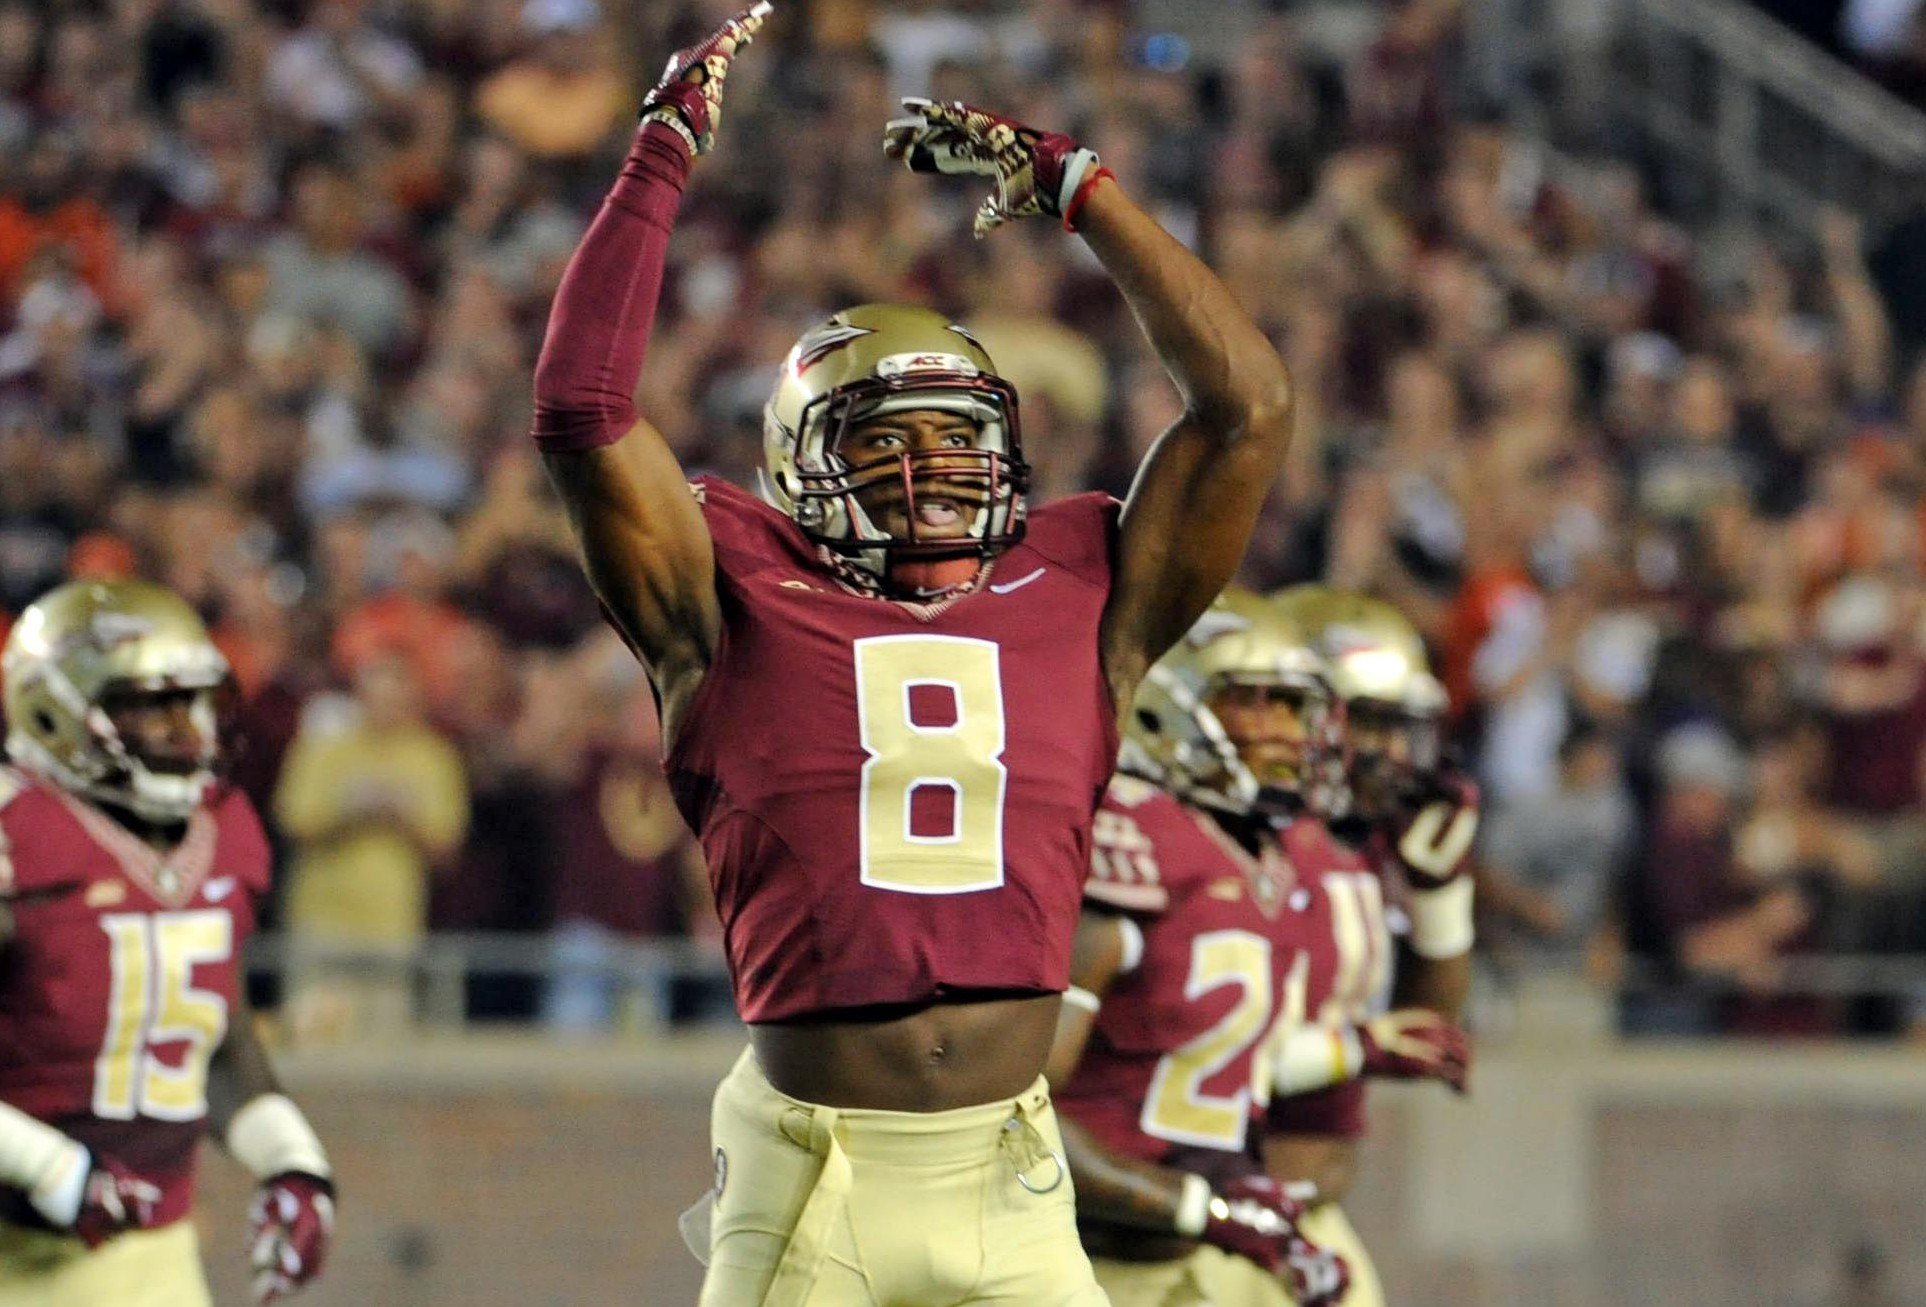 Florida State's Jalen Ramsey celebrates a big defensive play against Clemson. (Melina Vastola-USA TODAY Sports)